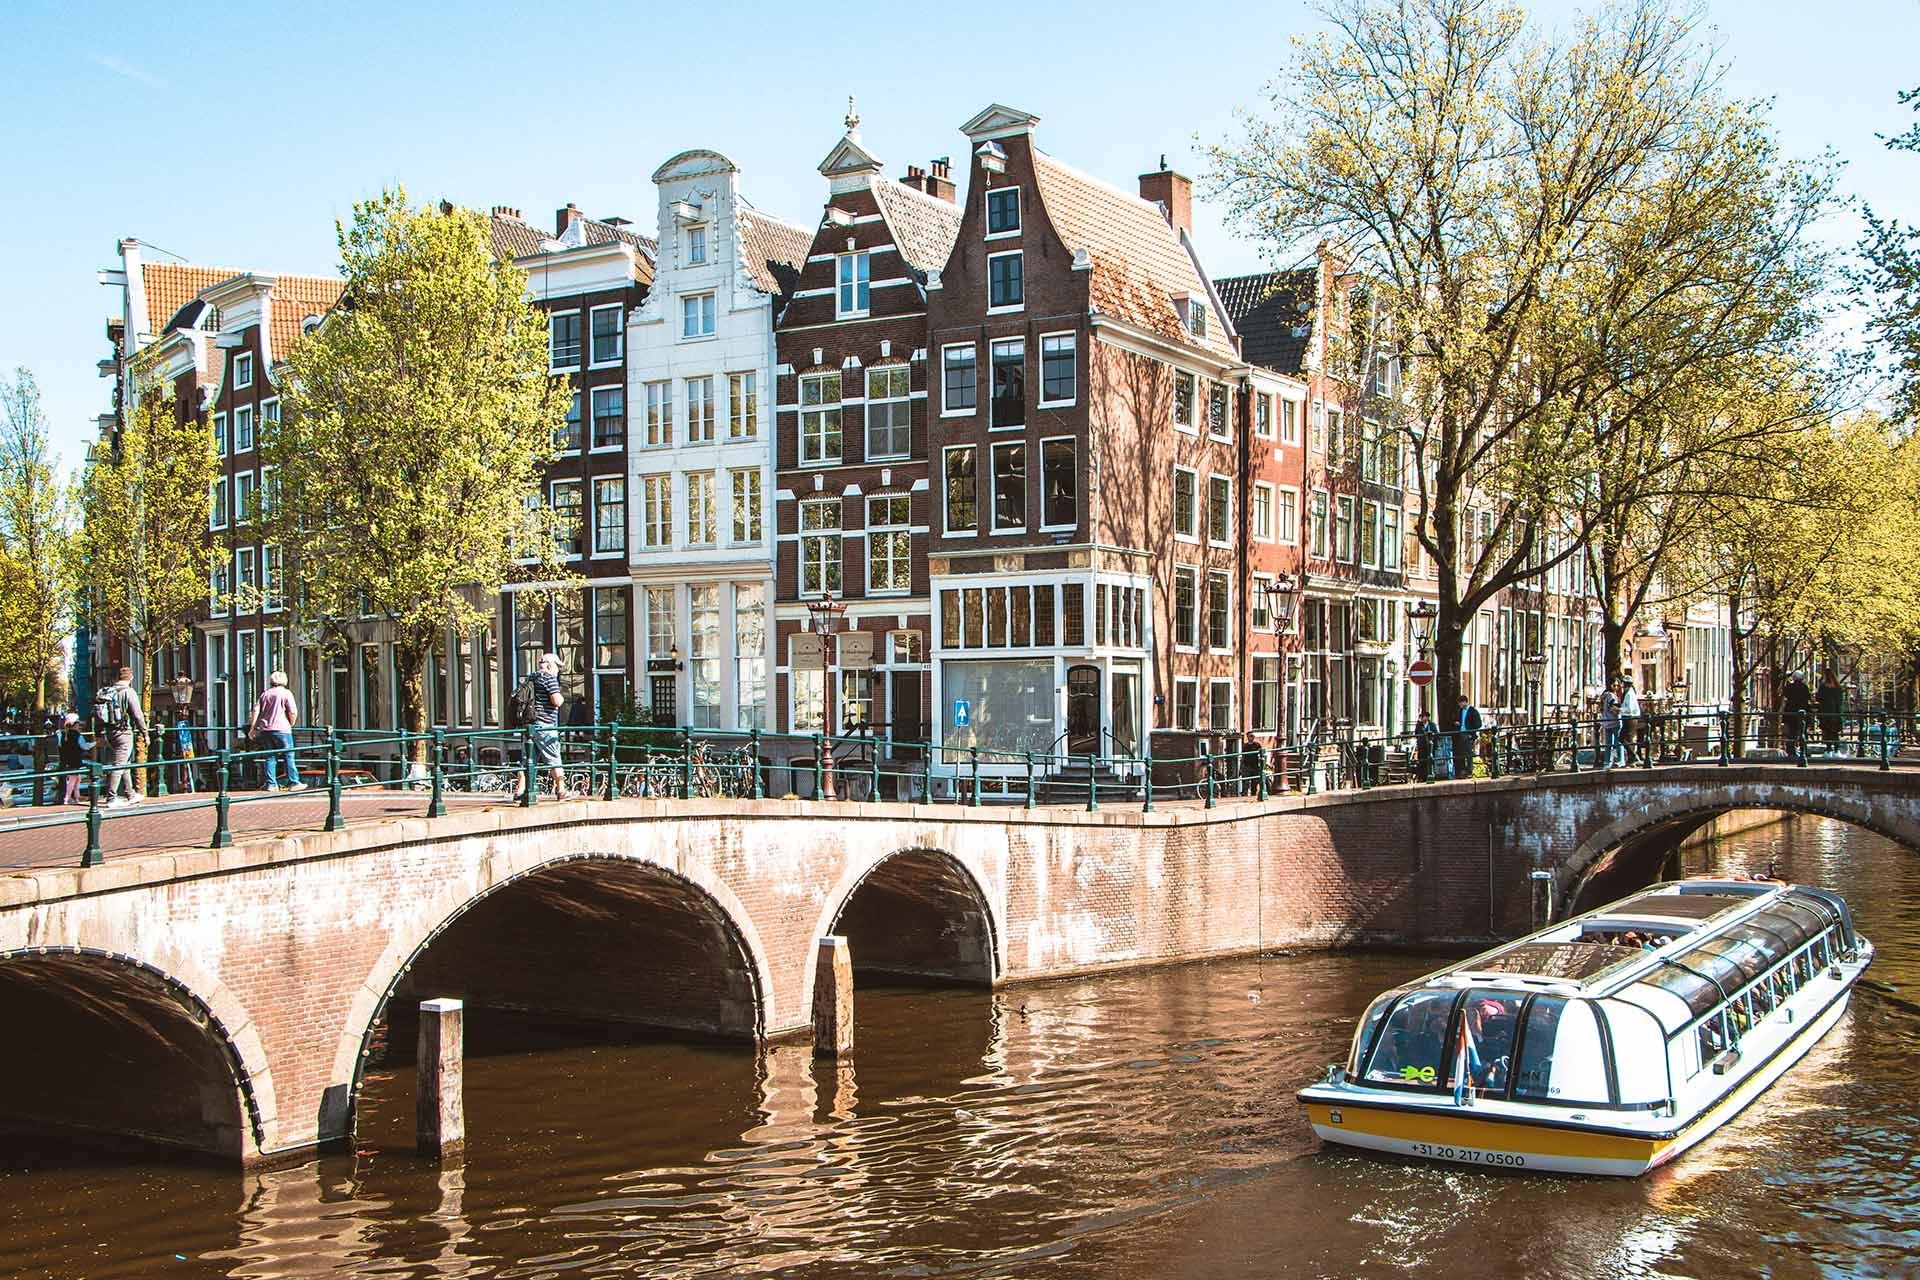 Getting to know Amsterdam's canals